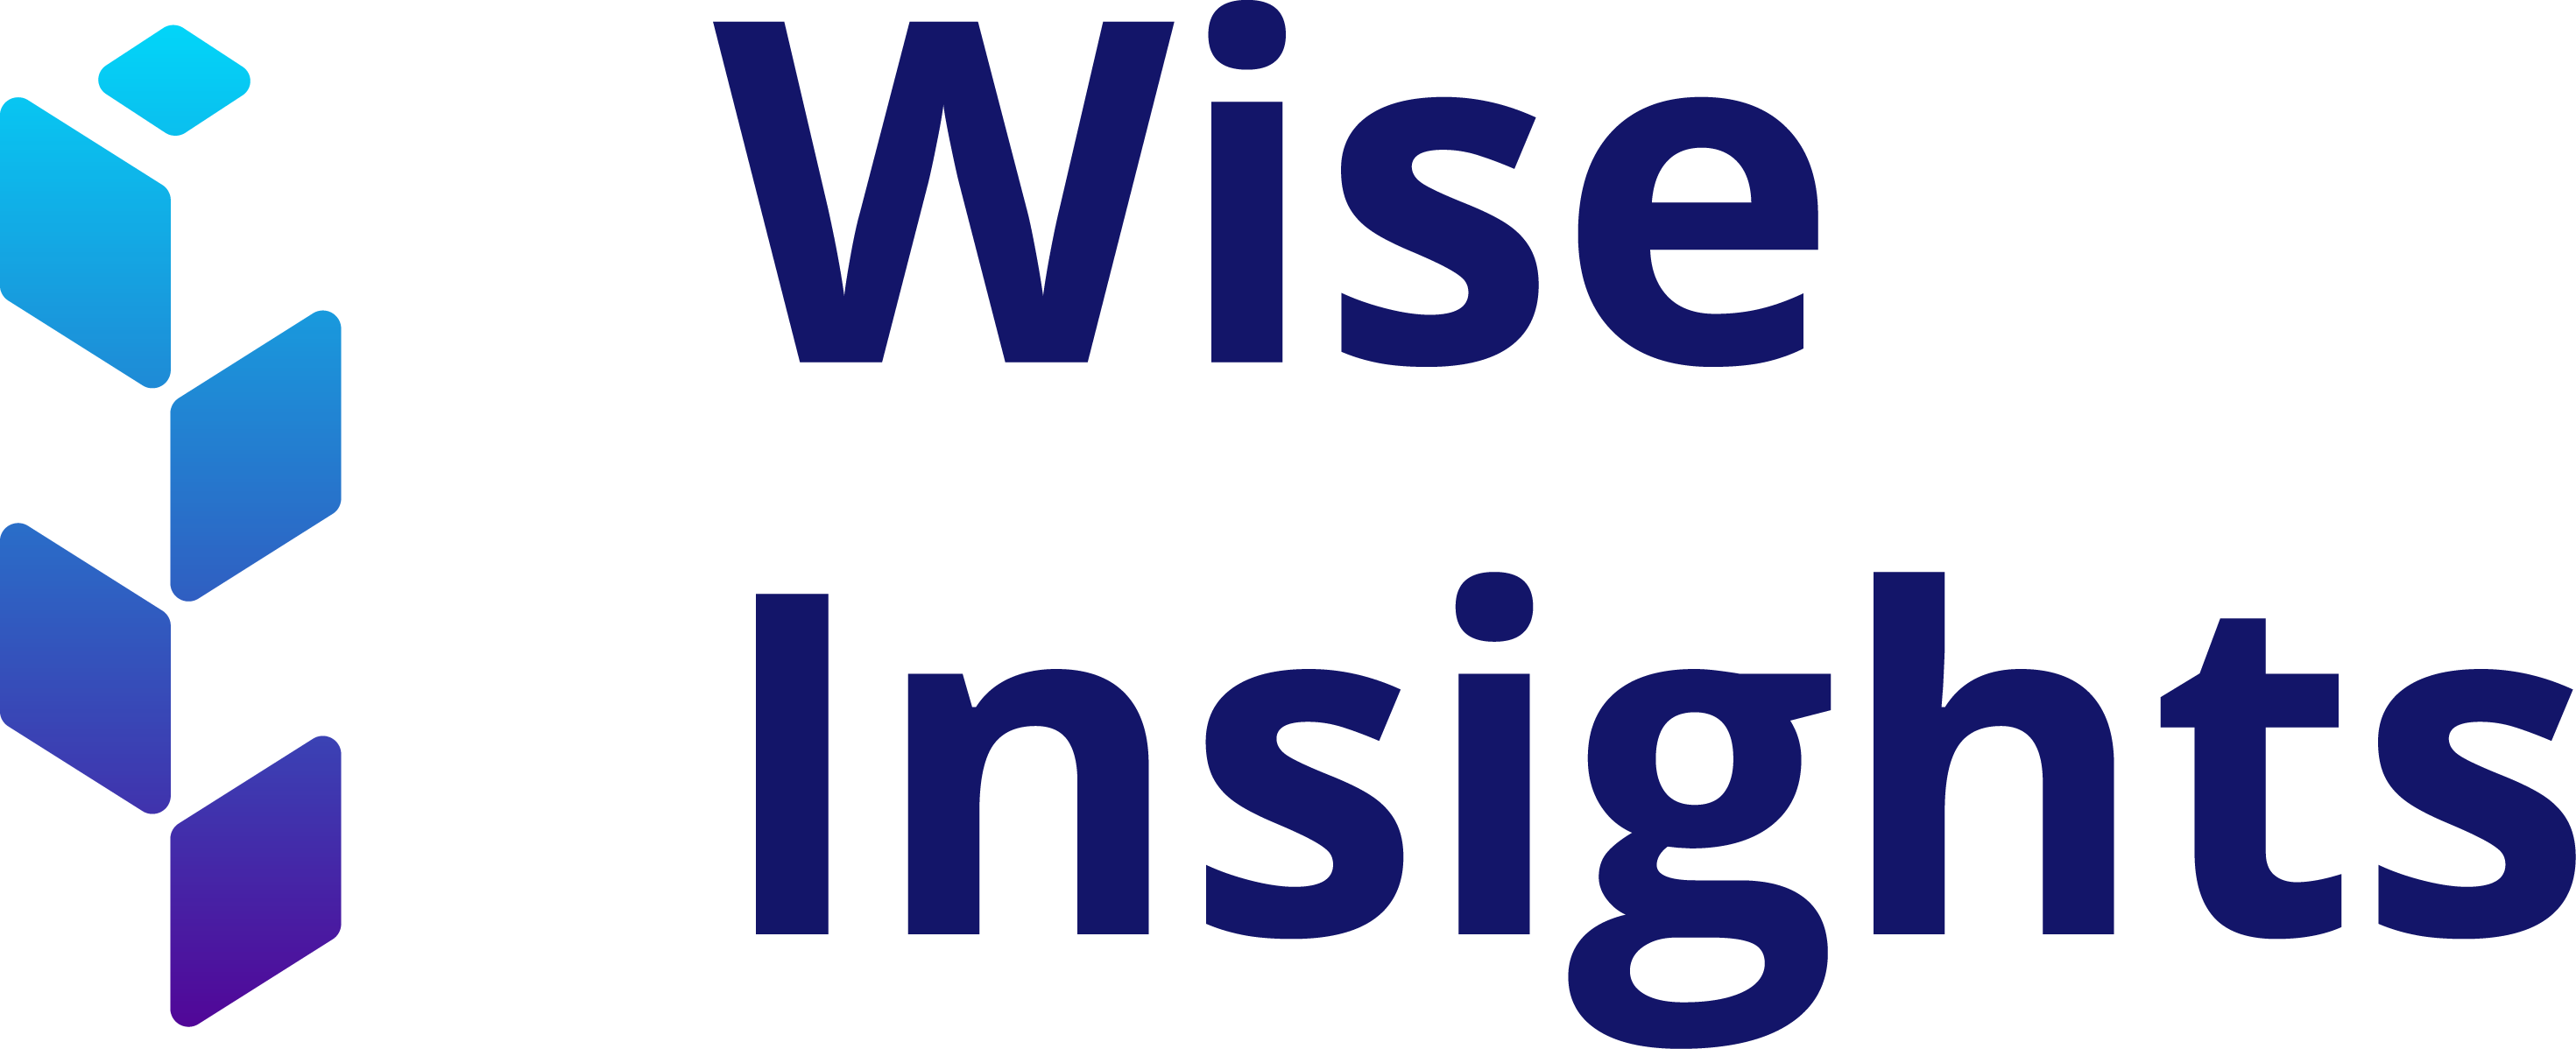 Wise Insights - Accelerate Results